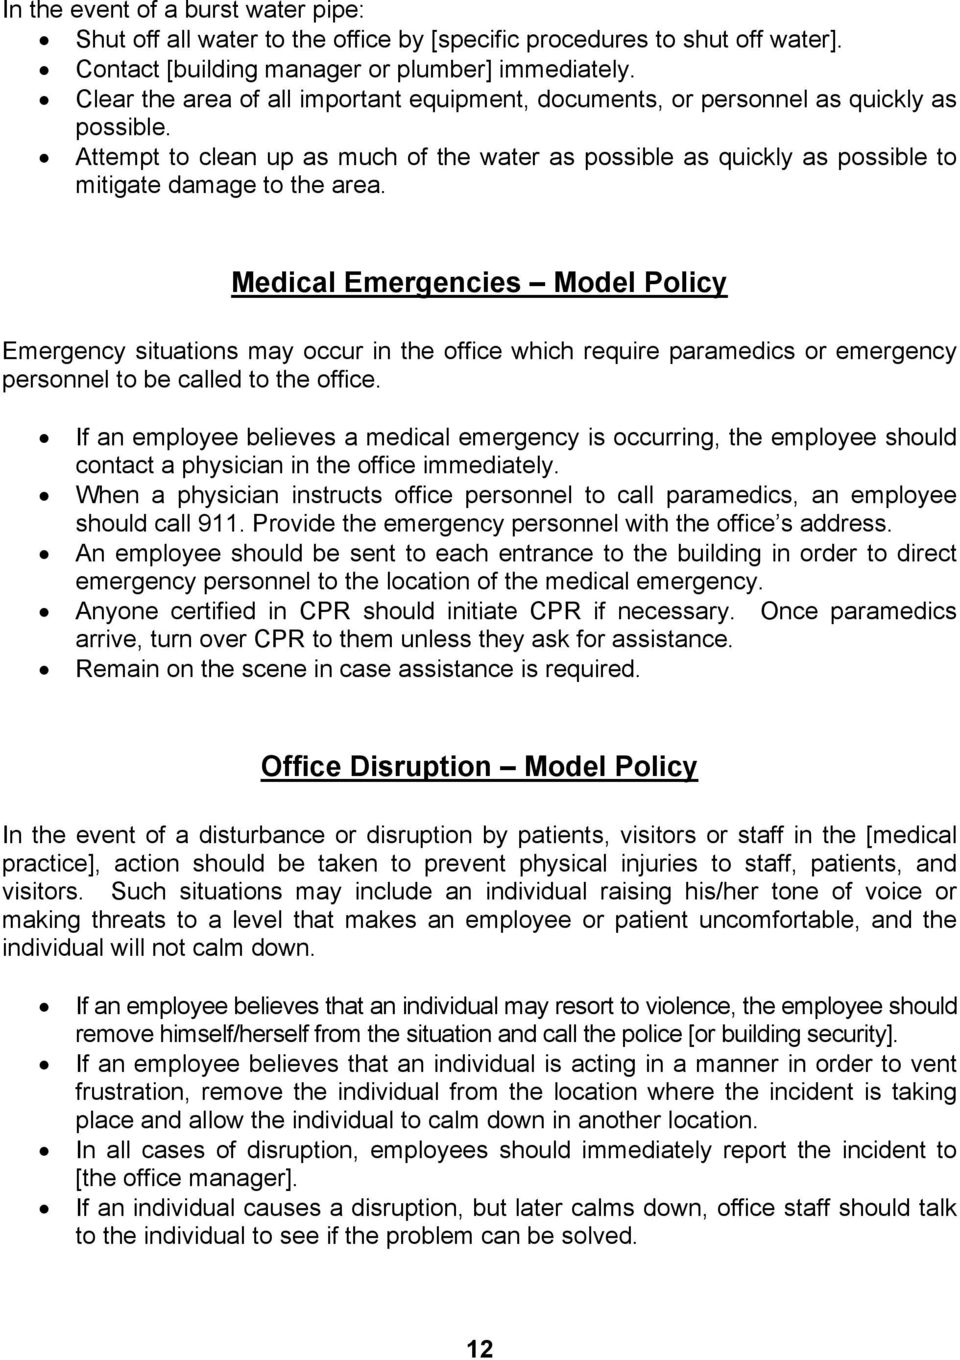 Medical Emergencies Model Policy Emergency situations may occur in the office which require paramedics or emergency personnel to be called to the office.